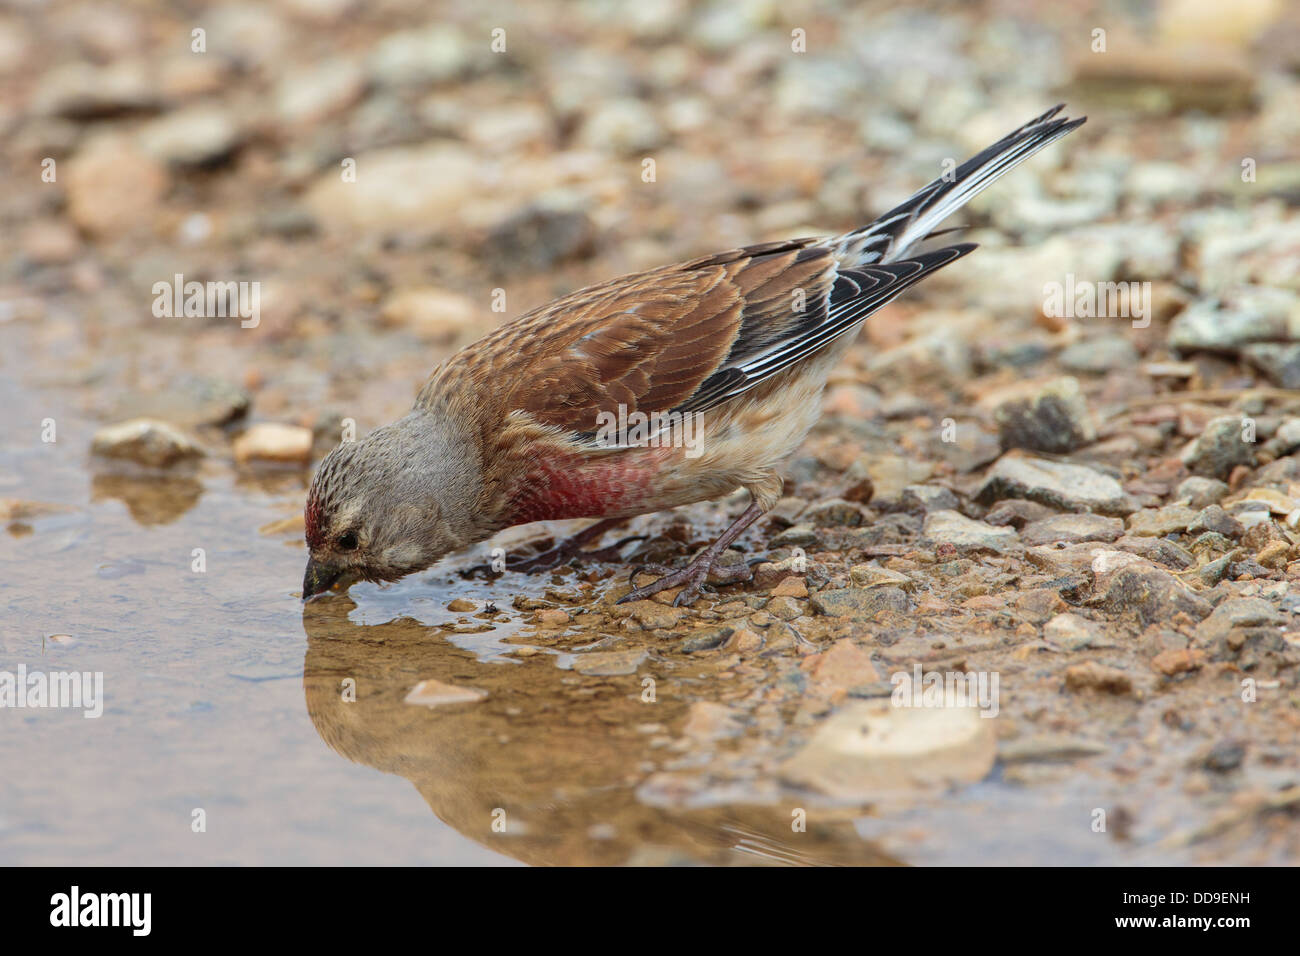 Male Common Linnet, Carduelis cannabina, drinking from puddle Stock Photo